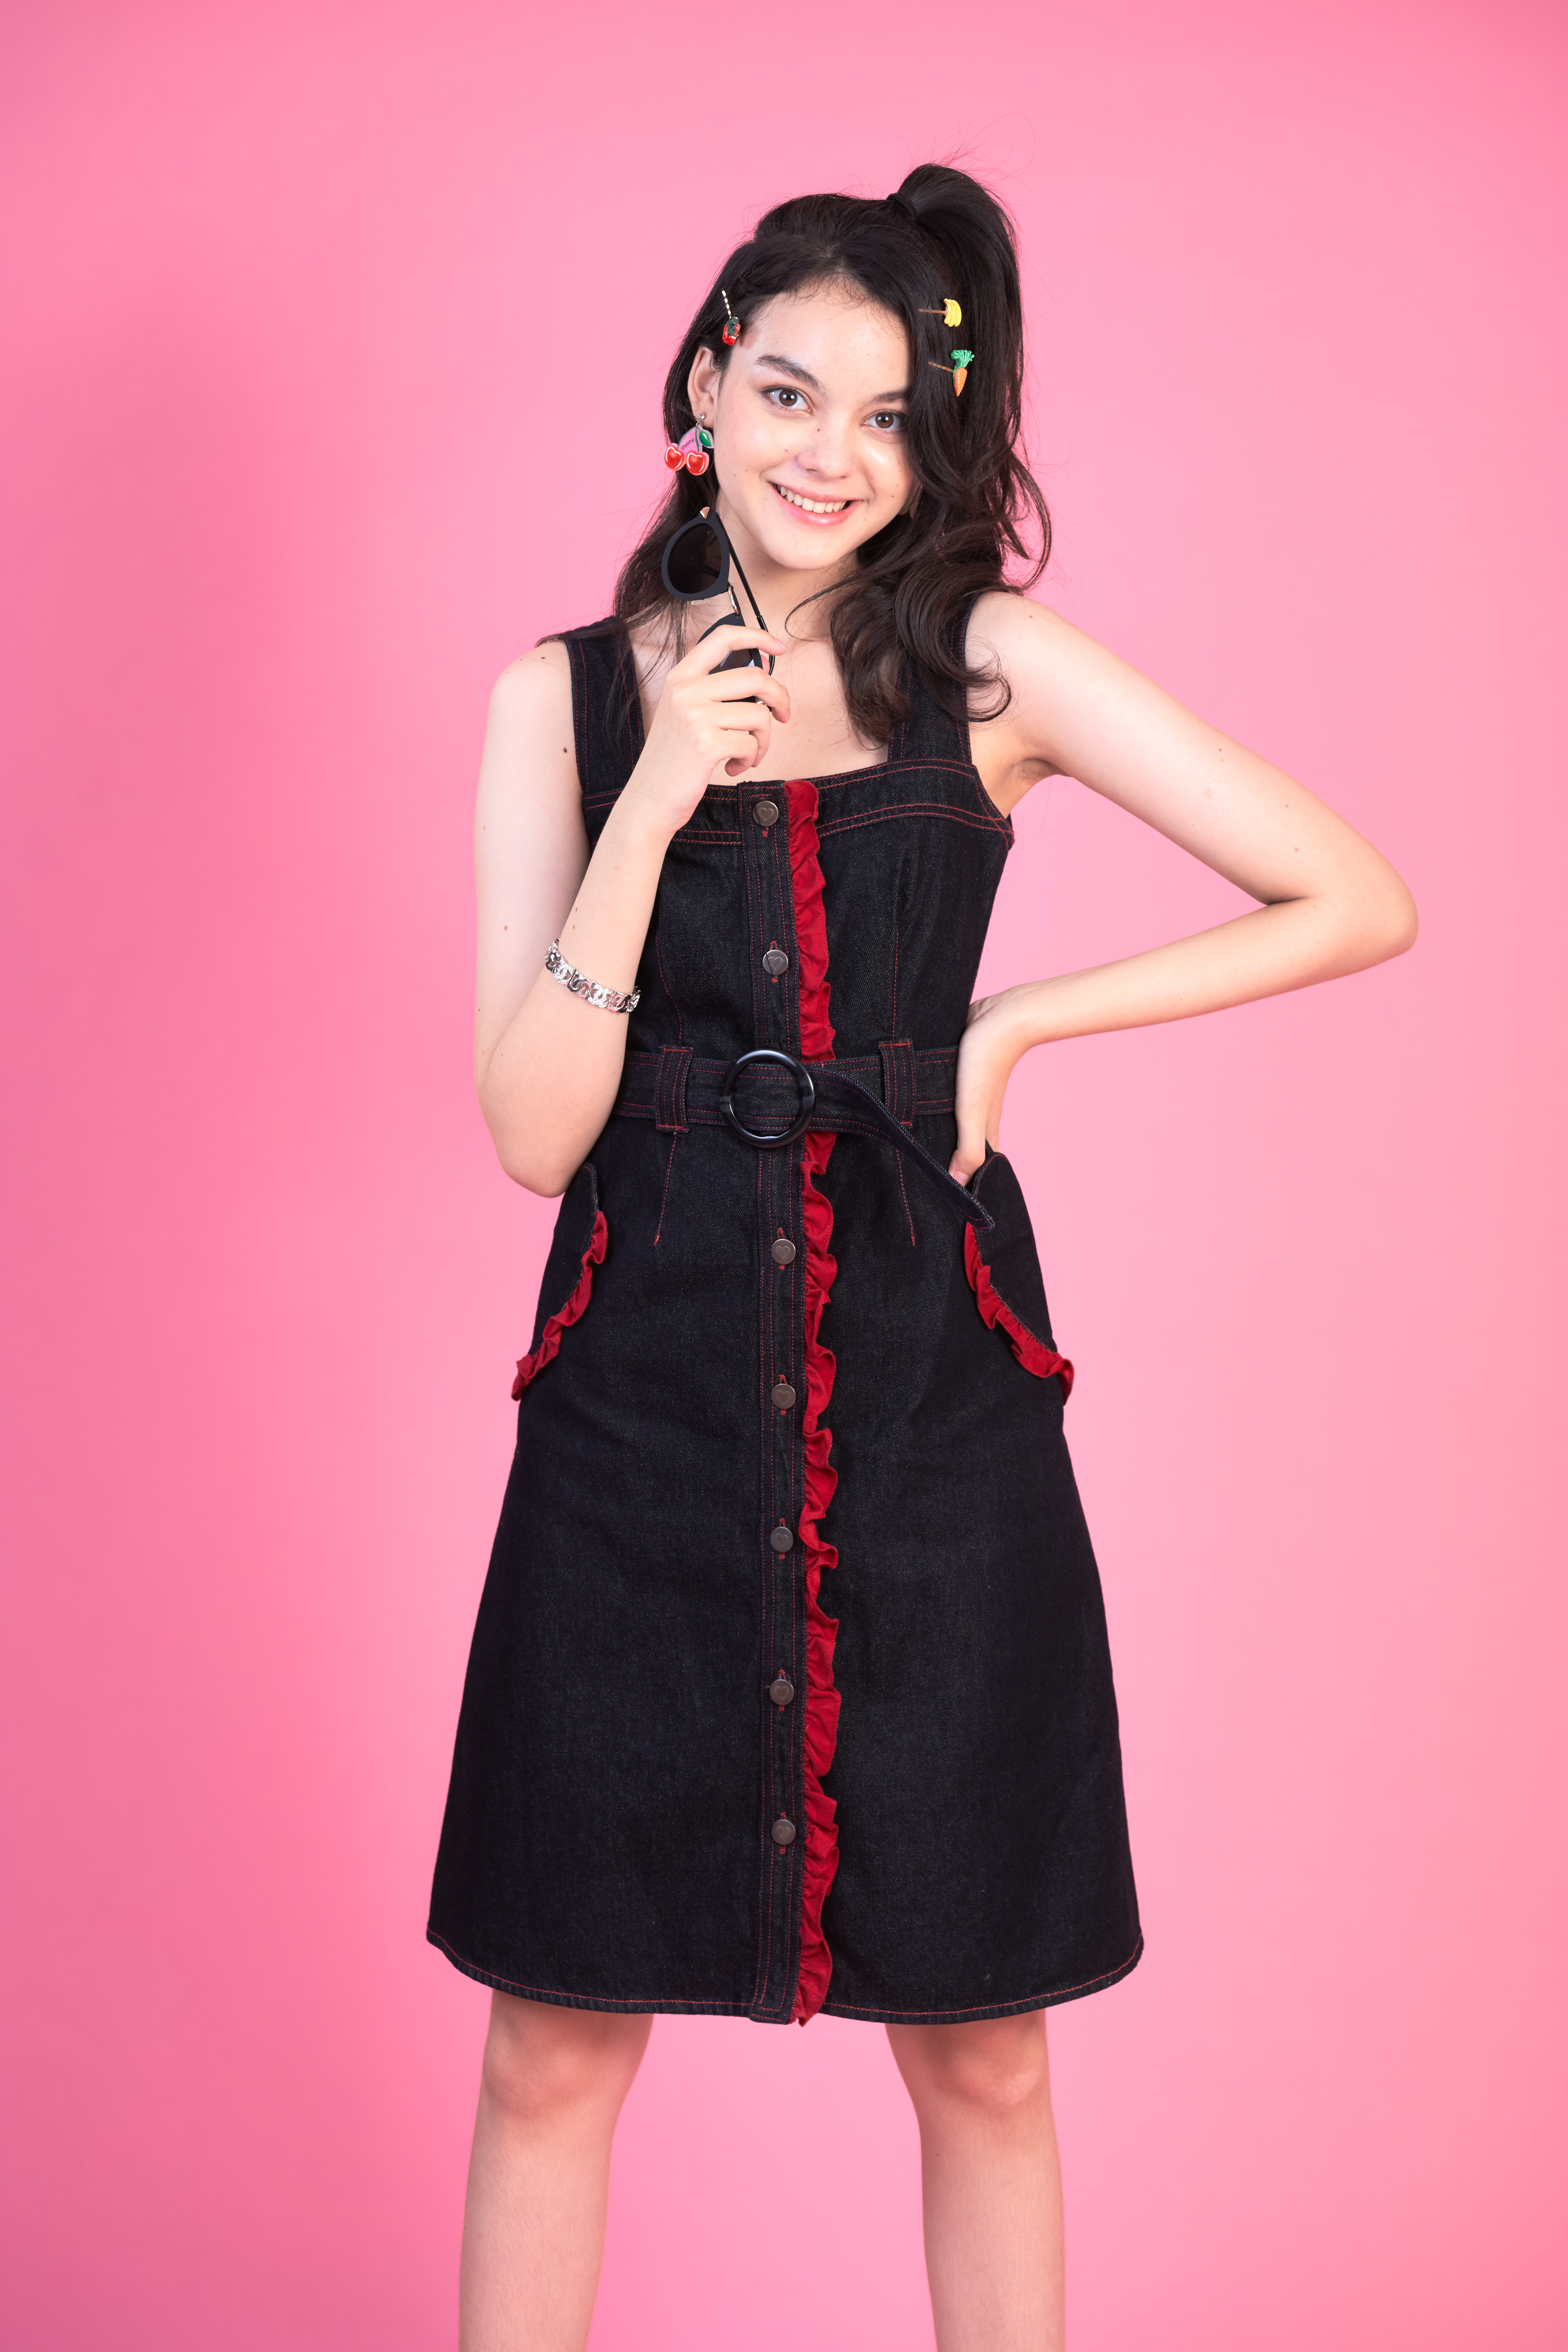 STR06 - WISH UPON A STAR DENIM RUFFLE FRONT BUTTON DRESS - IN STOCK NOW